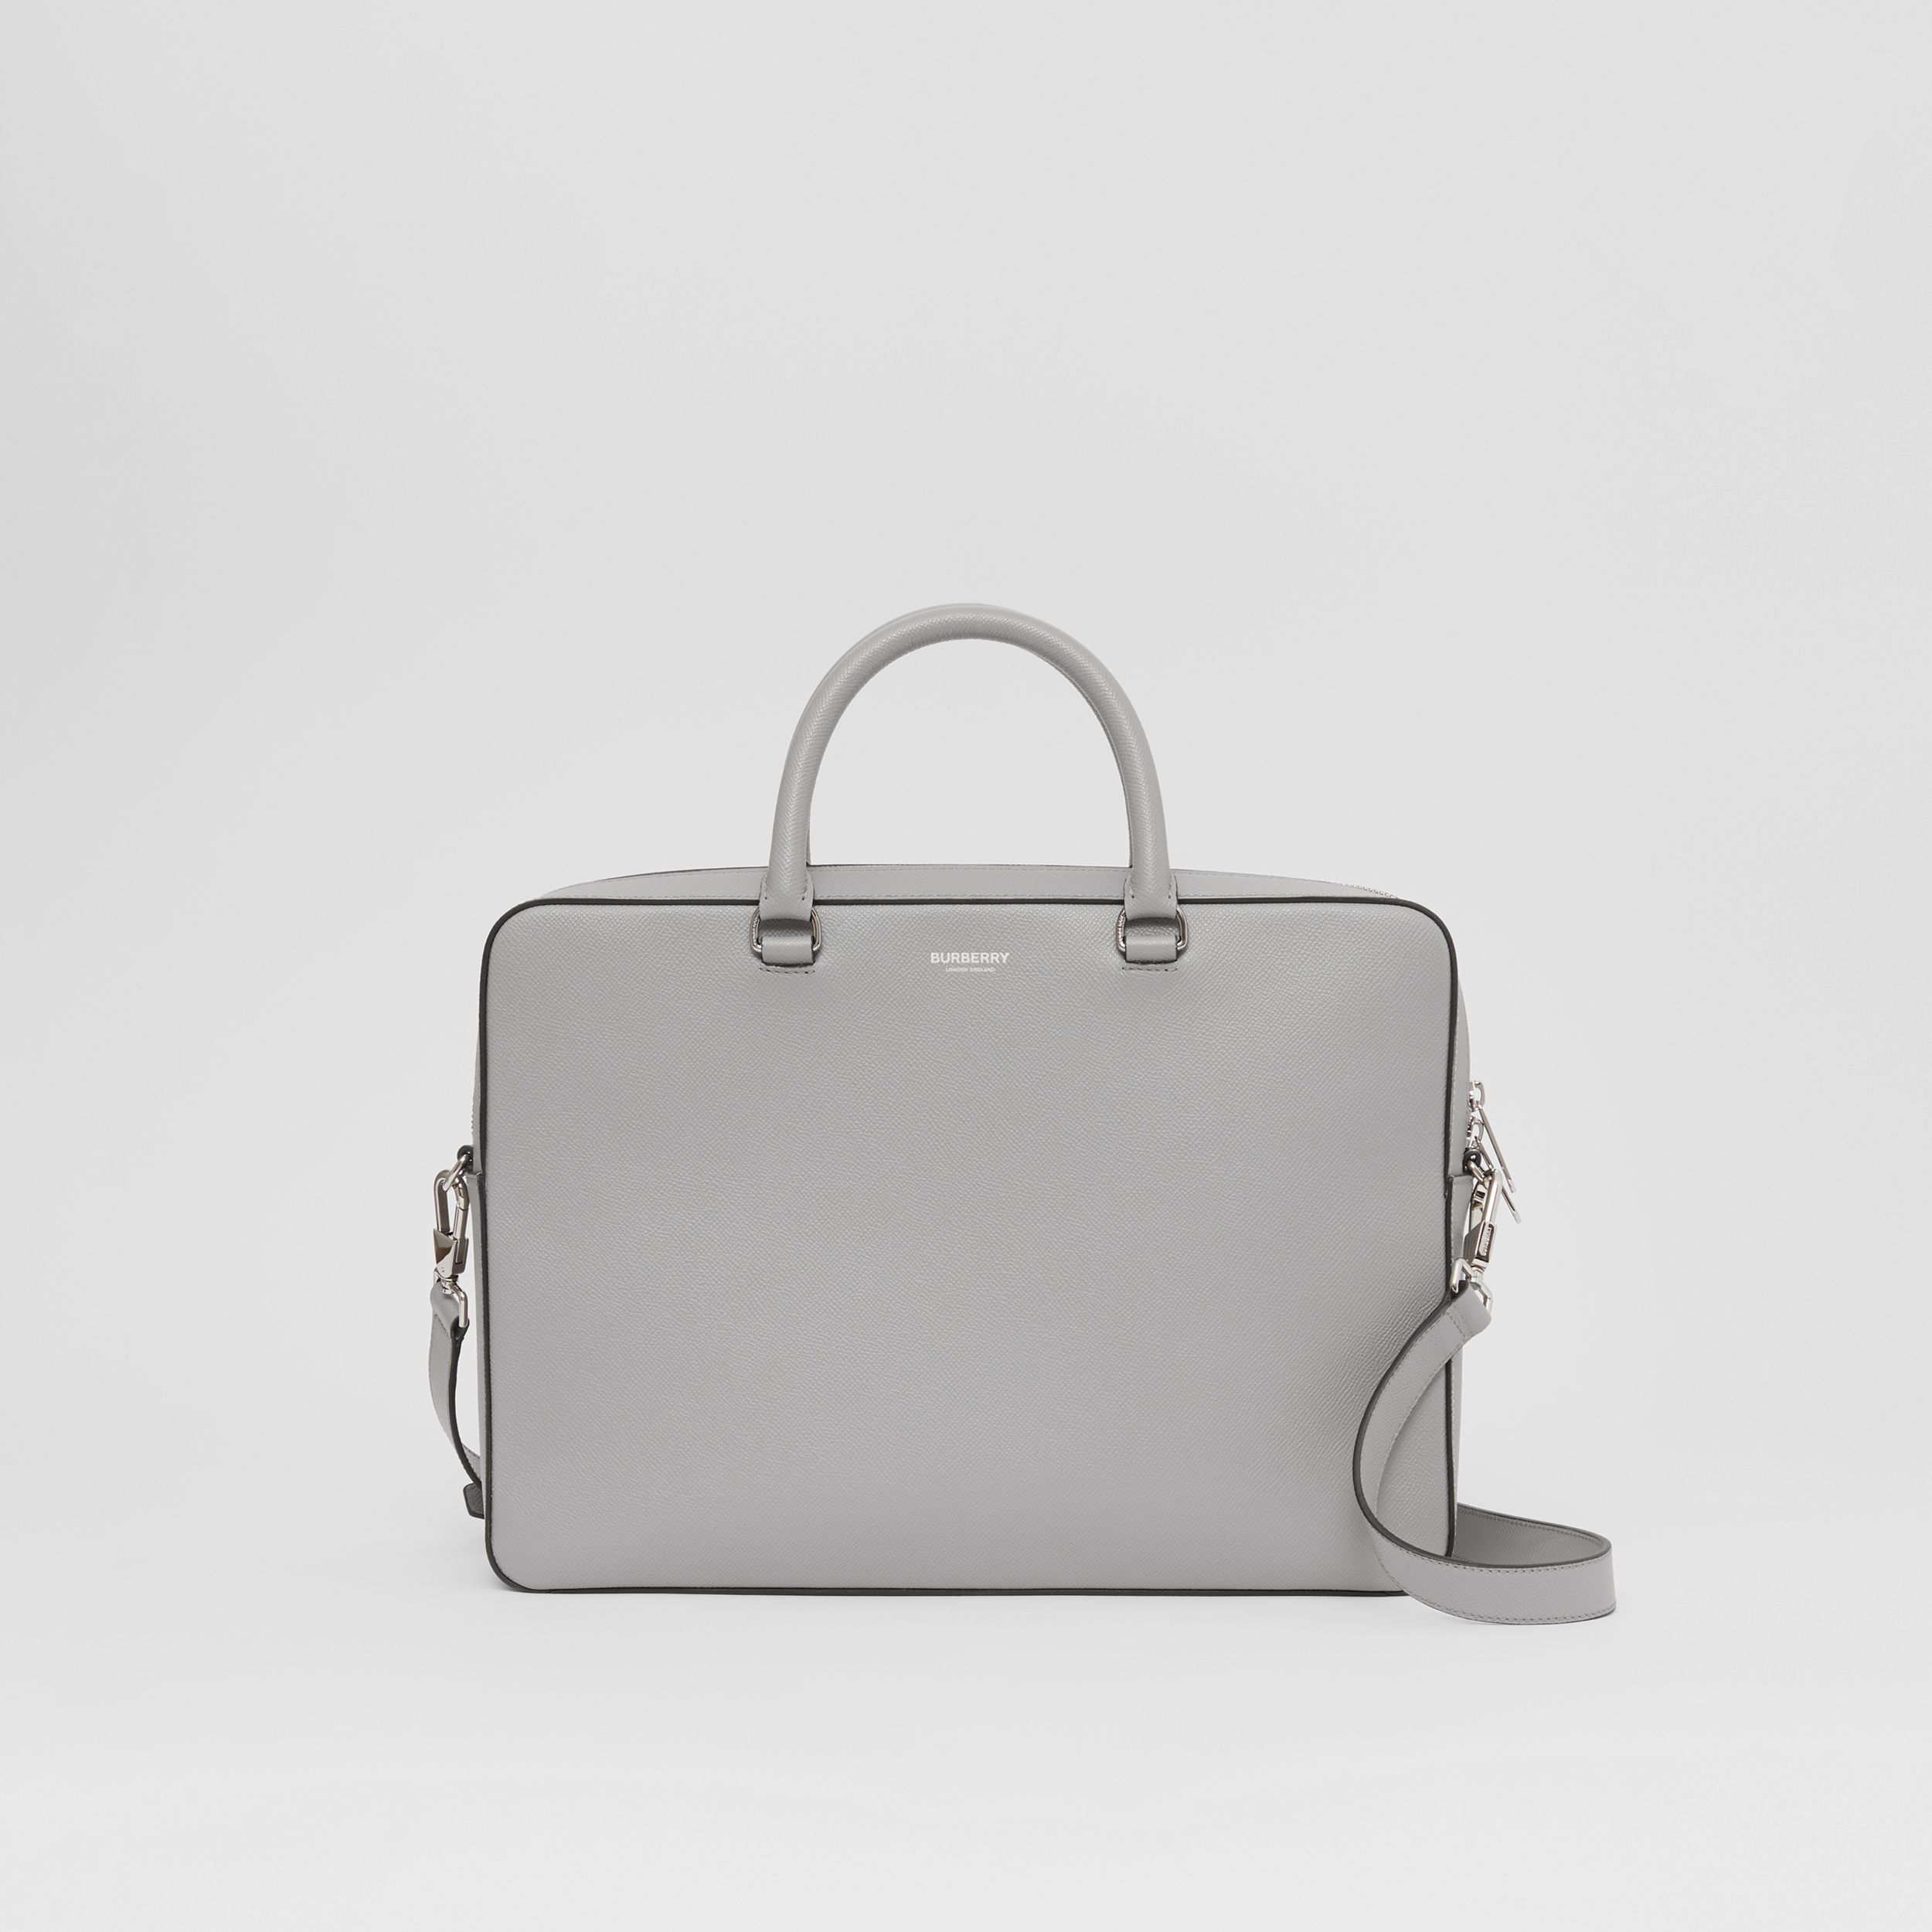 Grainy Leather Briefcase in Cloud Grey - Men | Burberry Hong Kong S.A.R. - 1